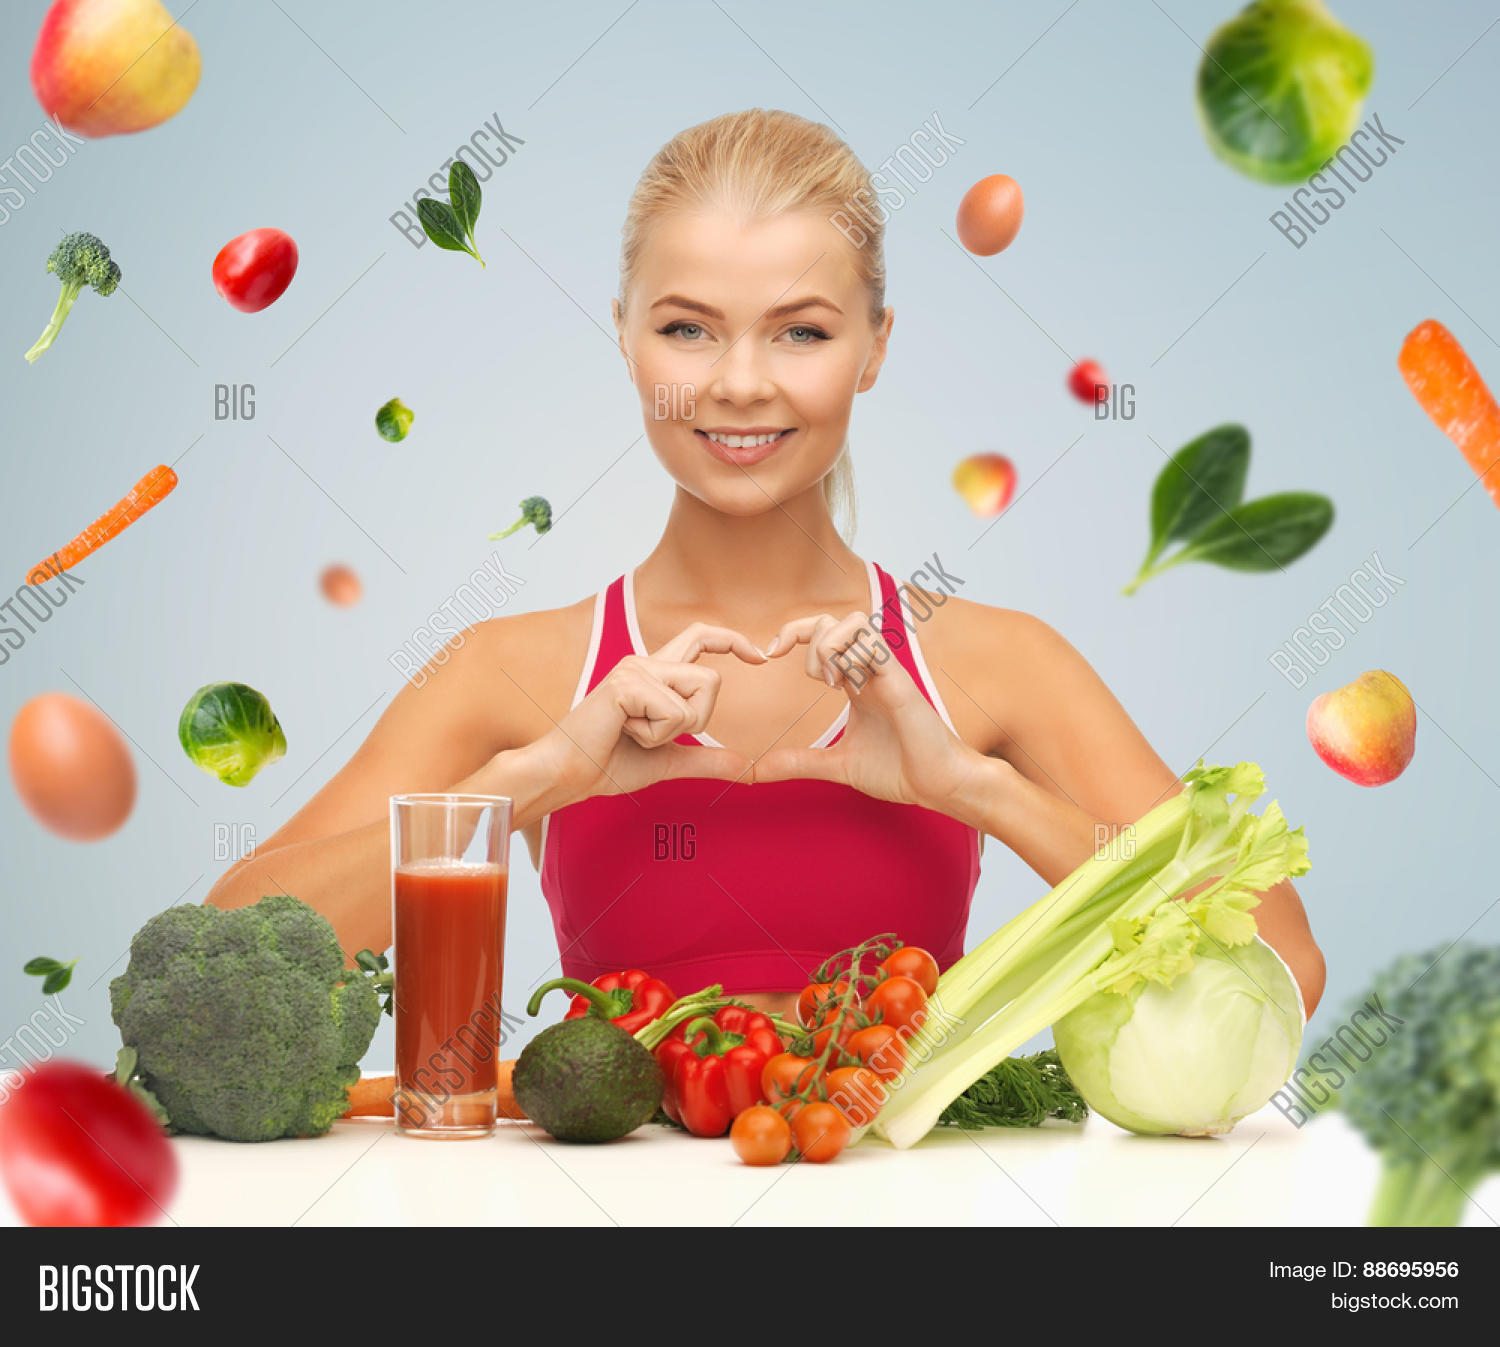 Organic Food Products Healthy: People, Healthy Eating, Vegetarian Image & Photo